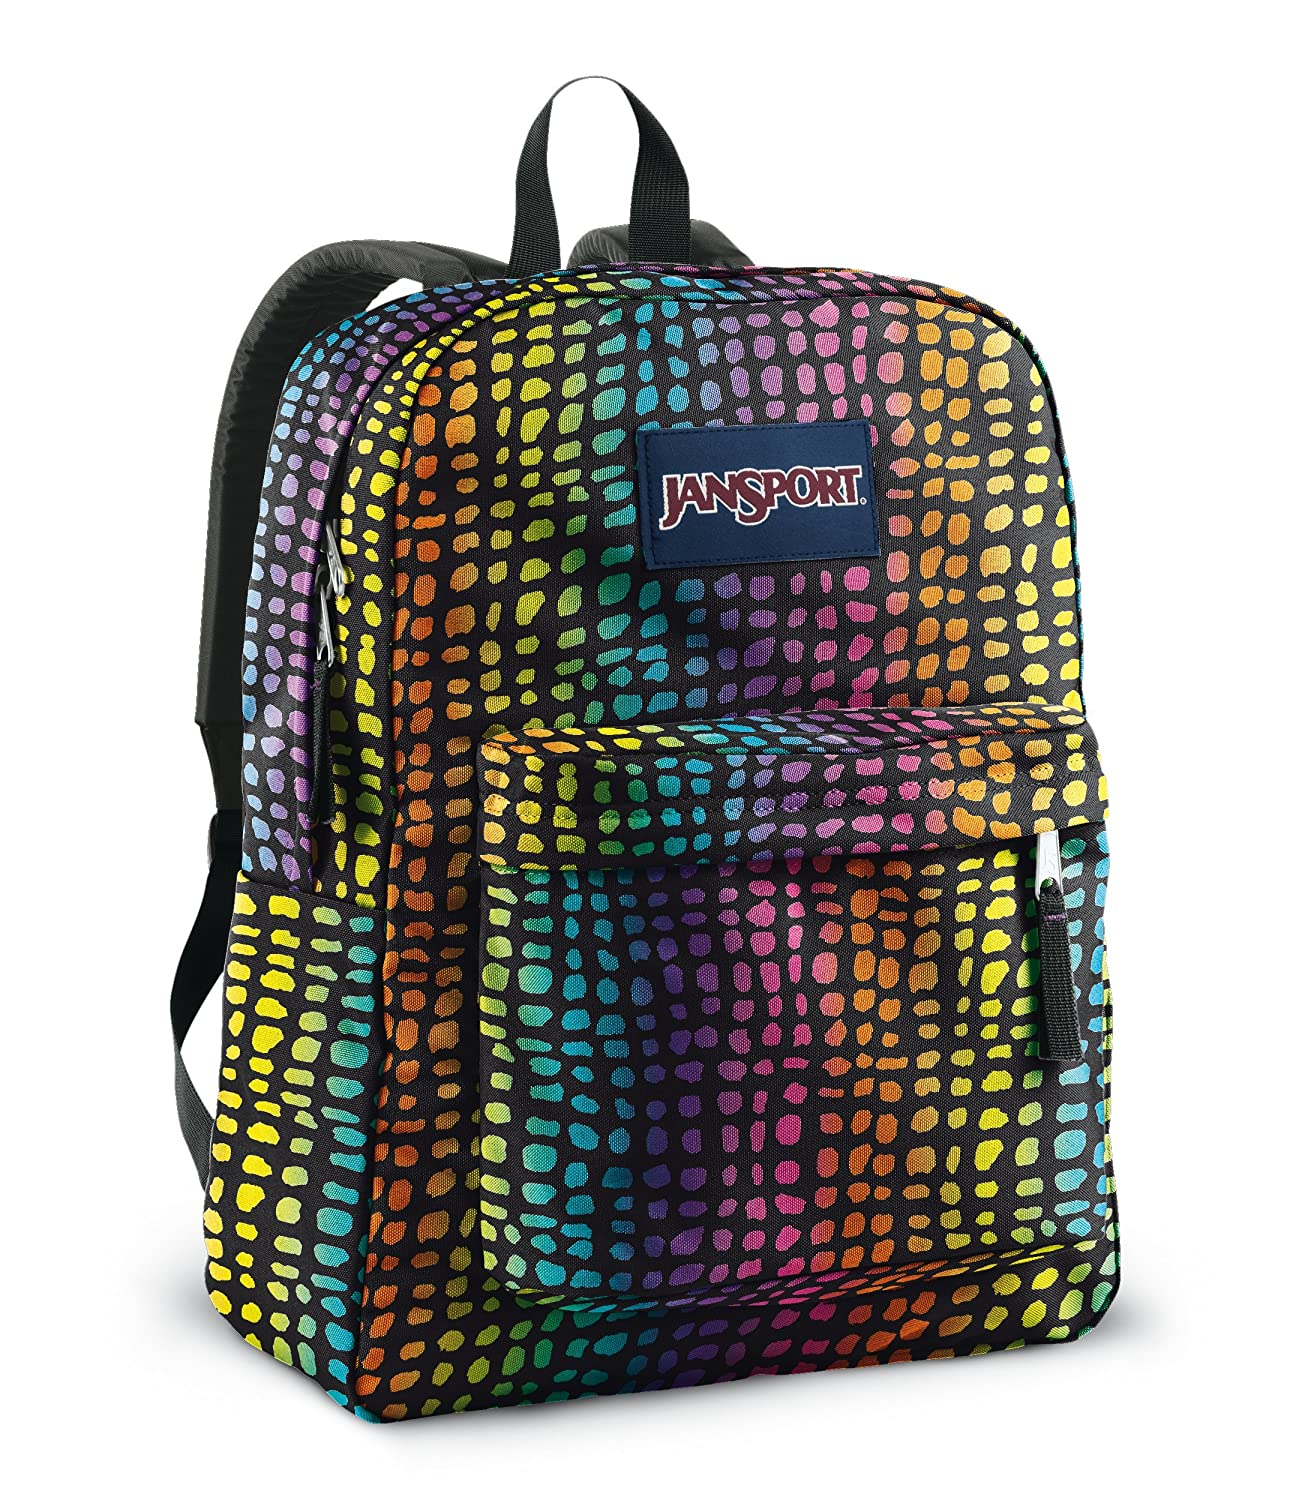 JanSport Classics Series Superbreak Backpack (Black/Multi Reptile)